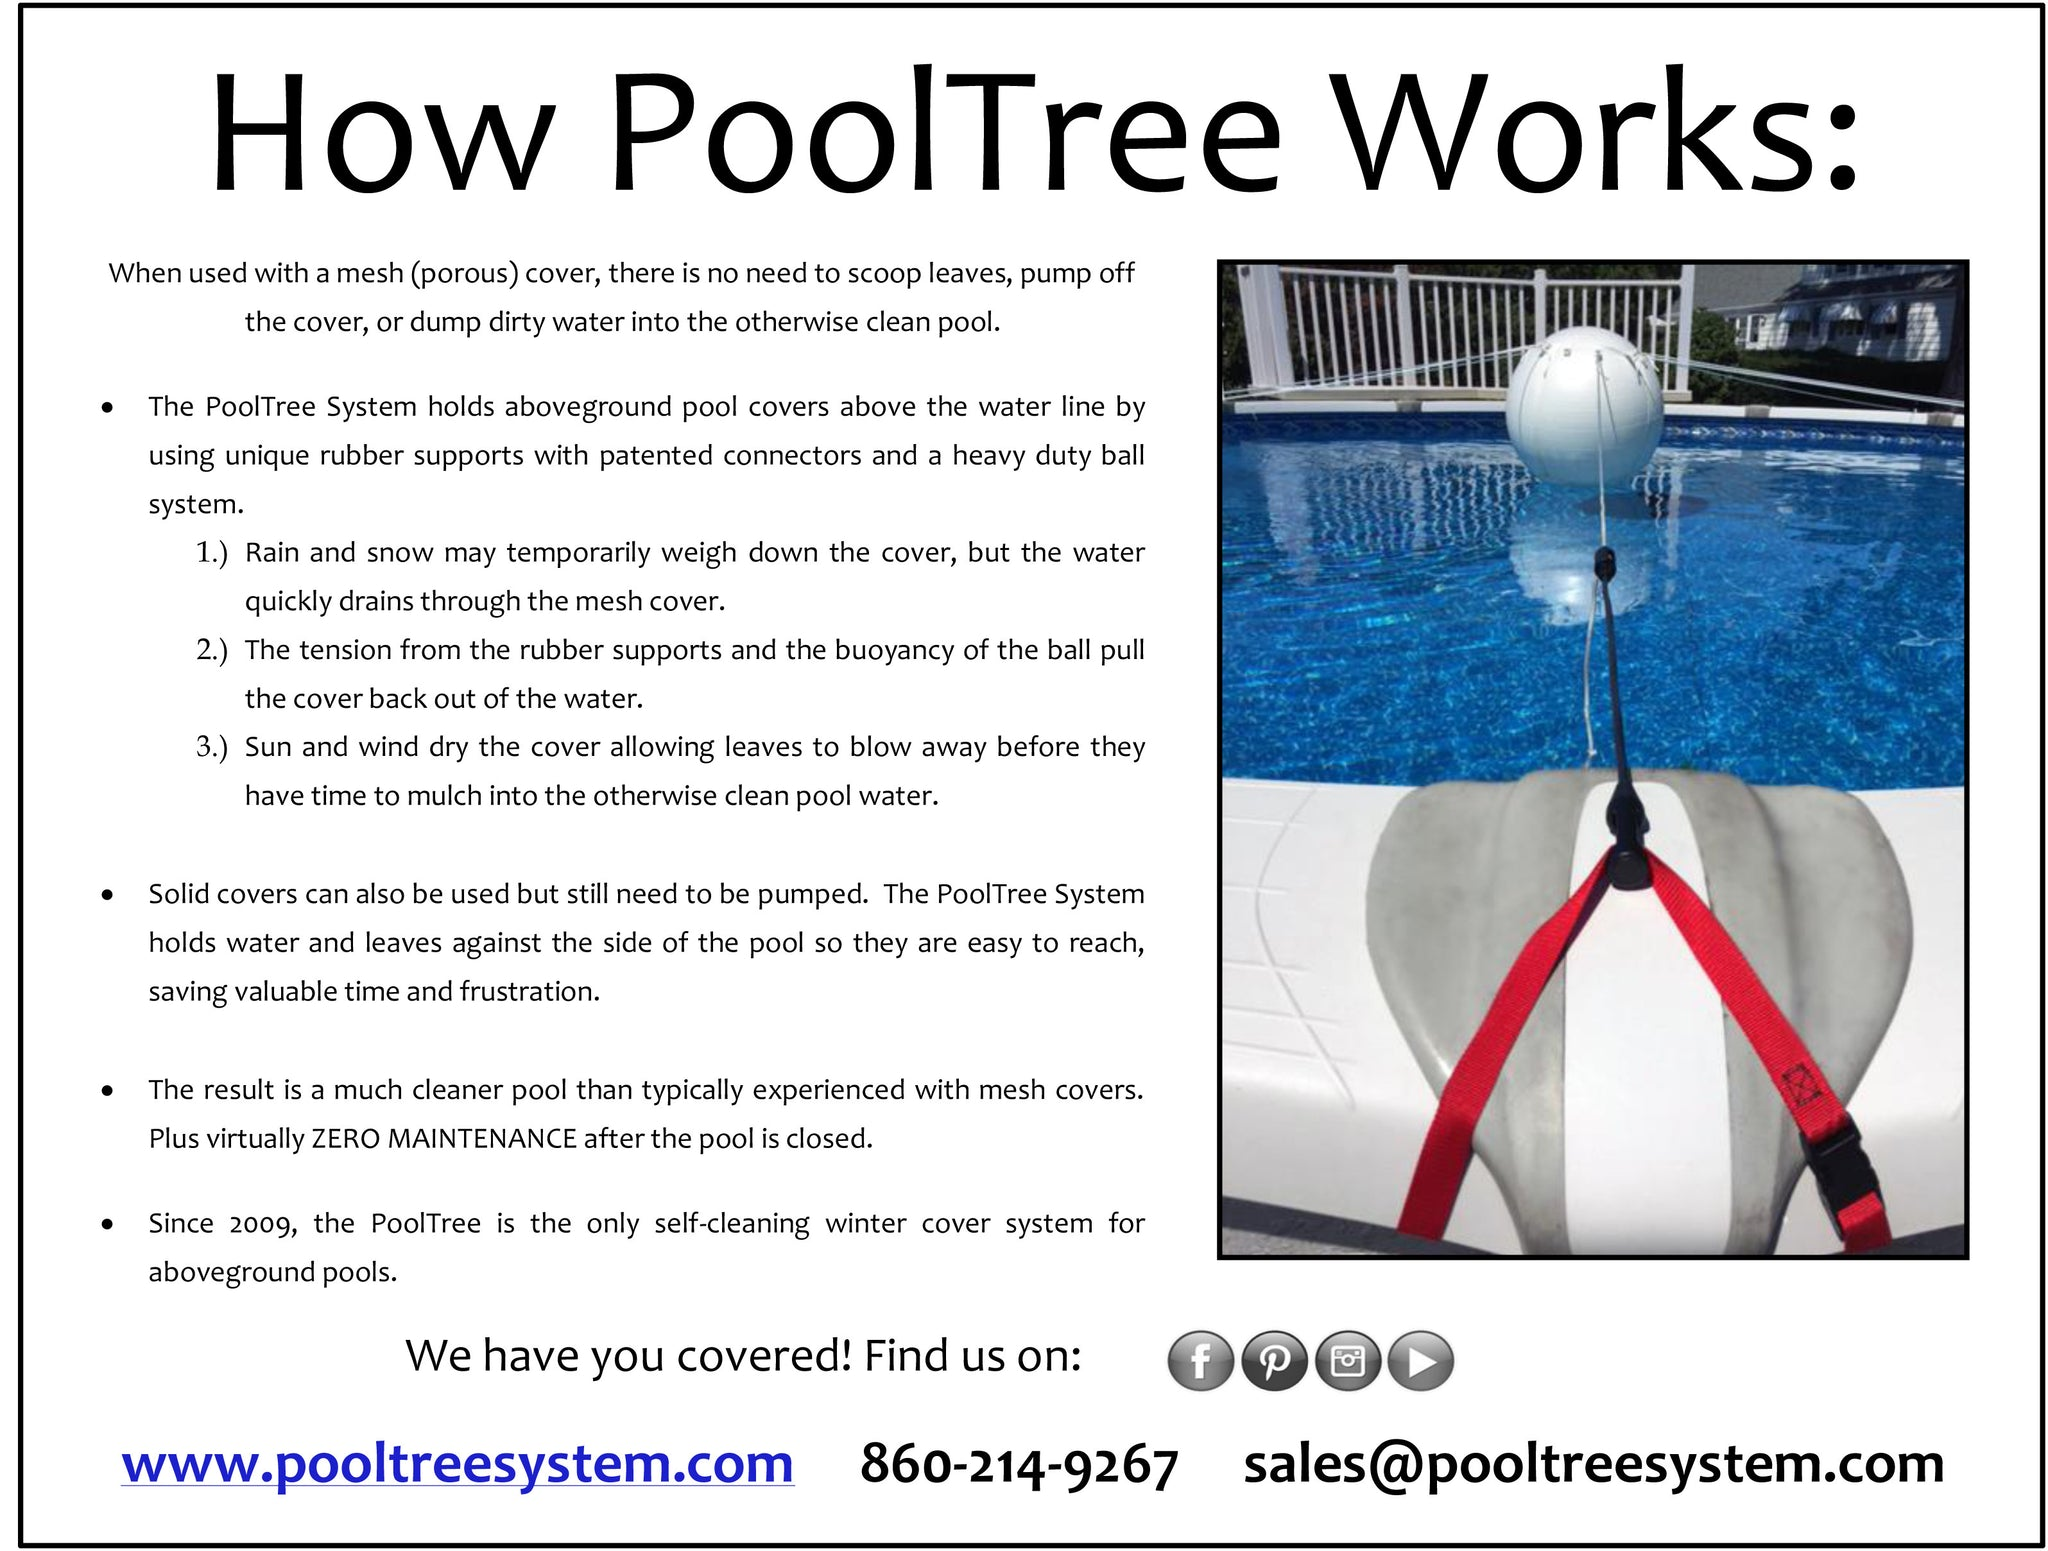 Pooltree system, pool tree system, winter cover system, aboveground pools, above ground pool, pool pillow, pool cover,  mesh cover, pool closing, pool winterization, support system, swimming pool, winter pool cover,  winterizing, air pillow, pool accessory, round pool, cover pillow, pool equipment, swimline, in the swim, pool mate, pillow pal, swim central, porous cover, pool pump, pool winter cover, pool cover support, pool closing kit, oval pool, ball, ball cover system, harness, bungee